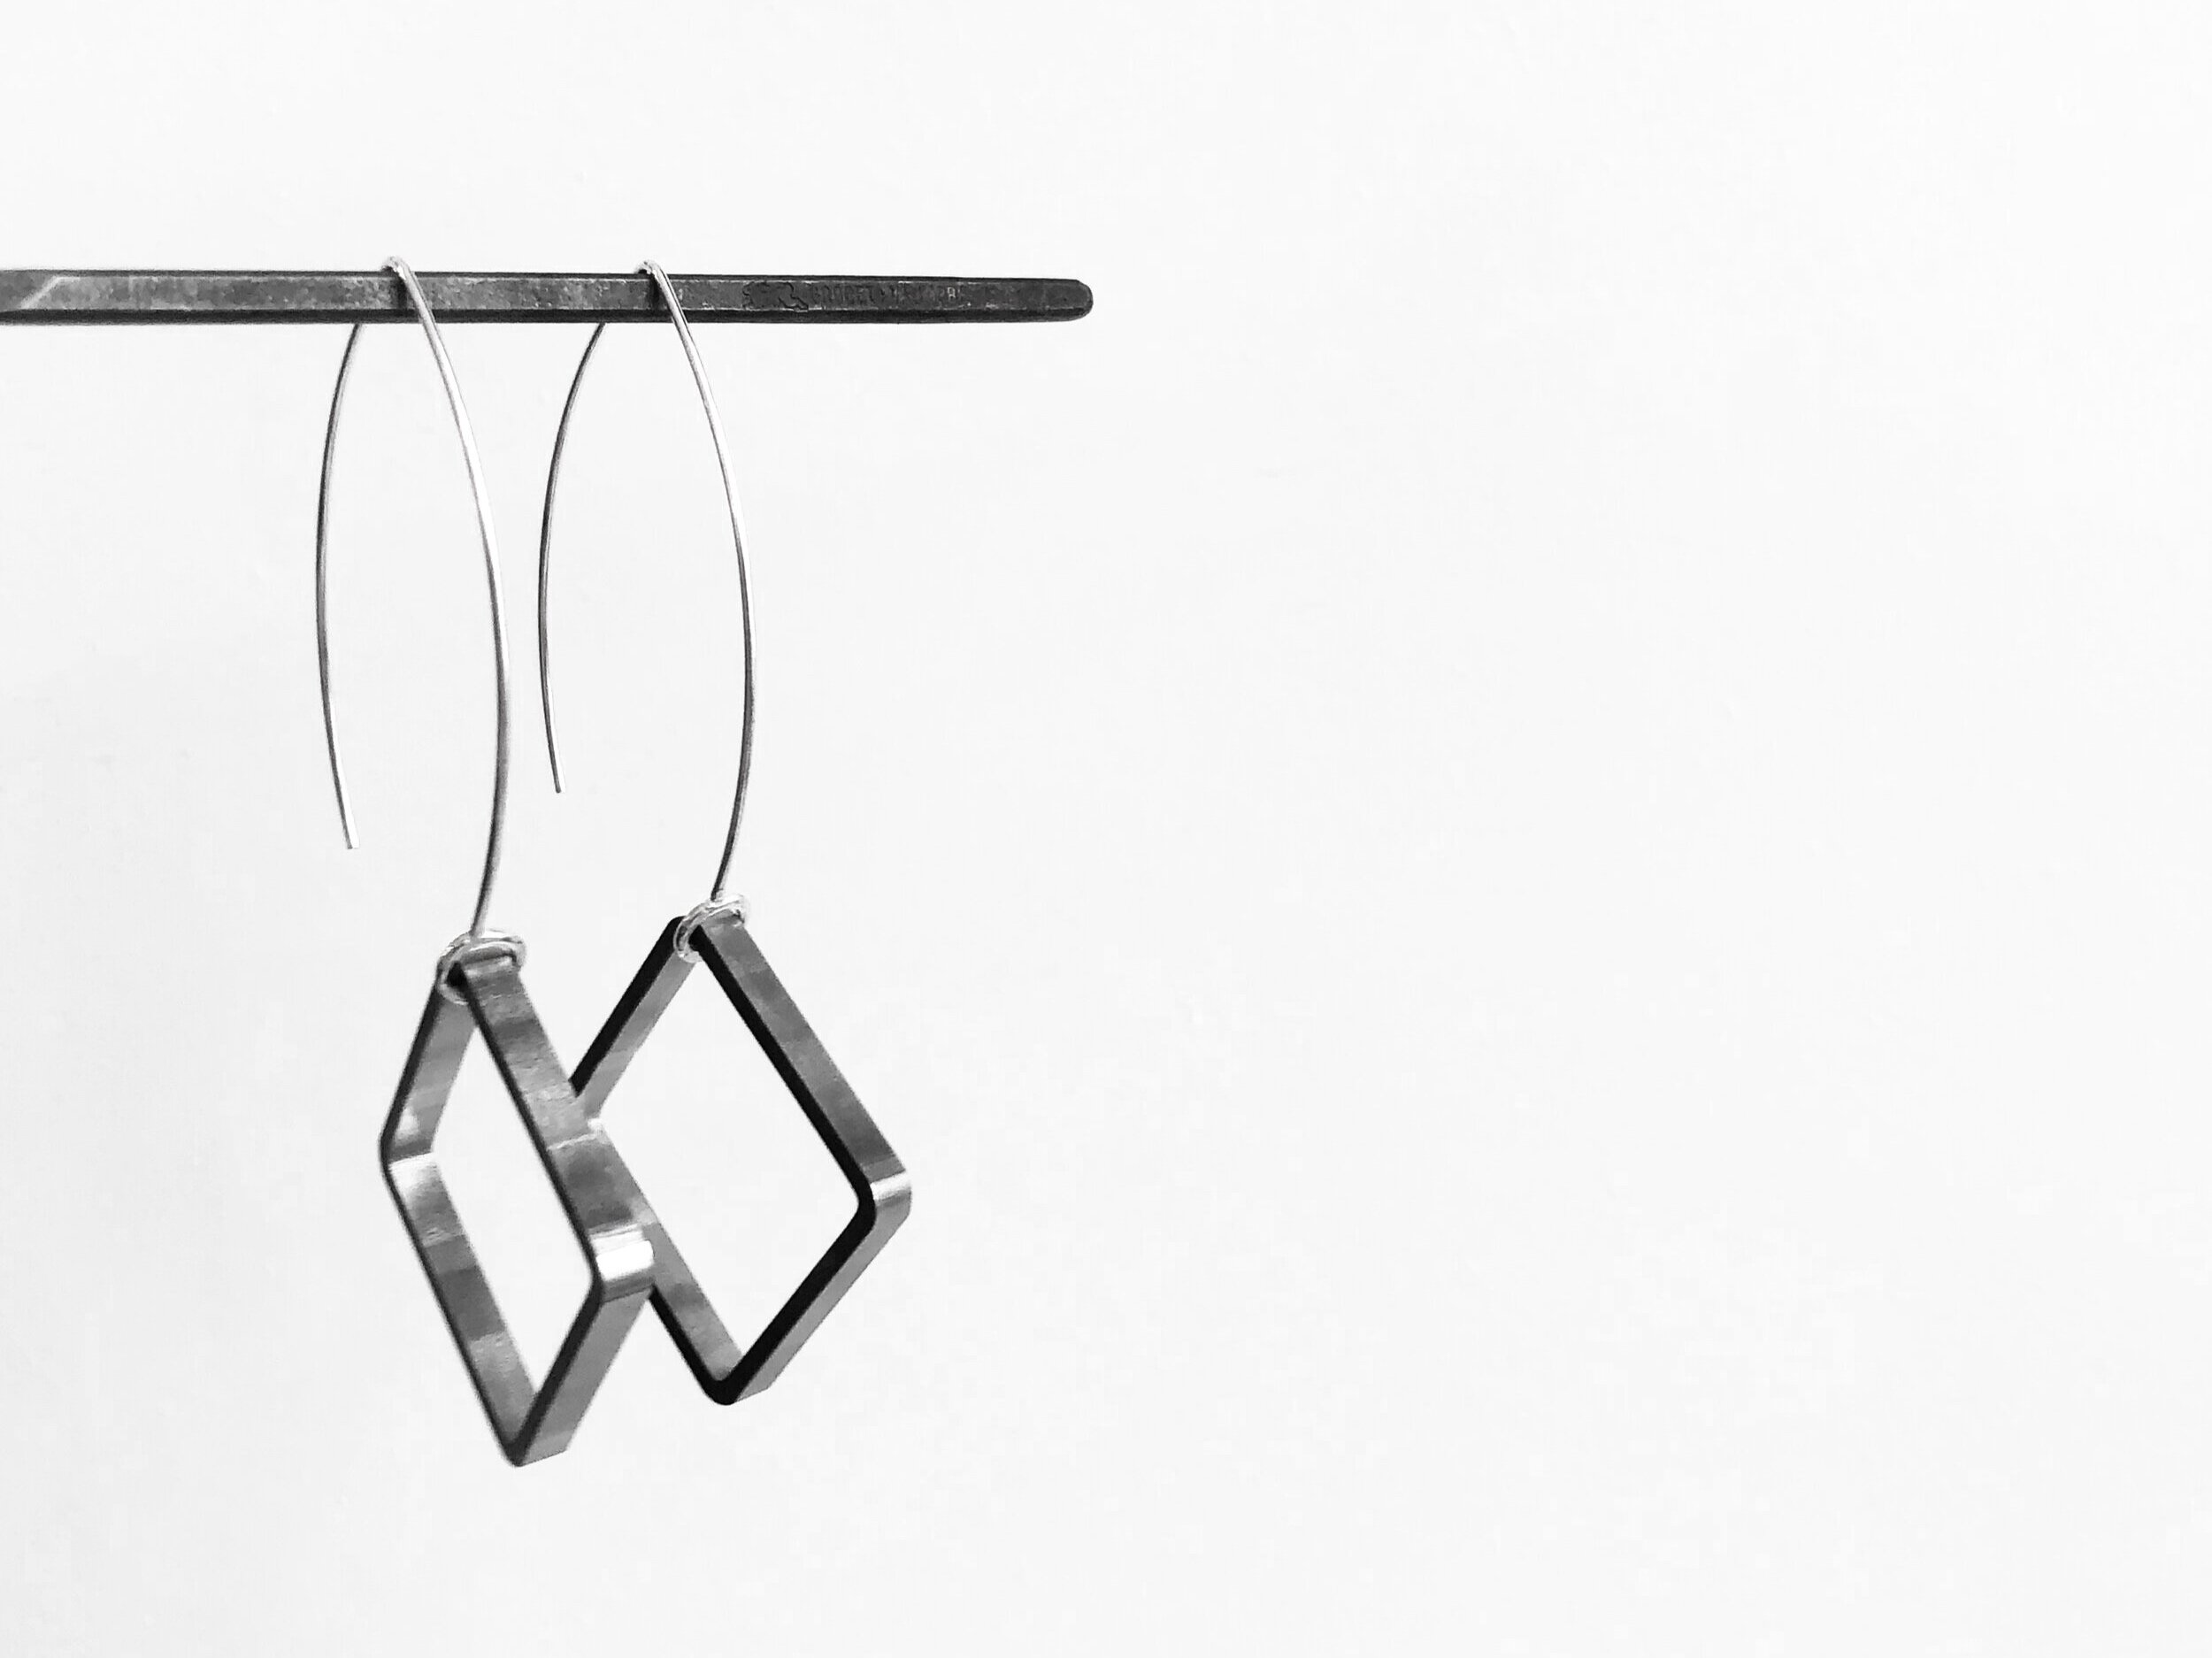 the jewelry - sable is a line of contemporary jewelry inspired by the minimal lifestyle. Each piece we make has a bold and intentional design- embracing the collision of power, strength, and elegance.we are a brand built on bridging the gap between masculine + feminine- our collections are built on simple forms and contemporary design.